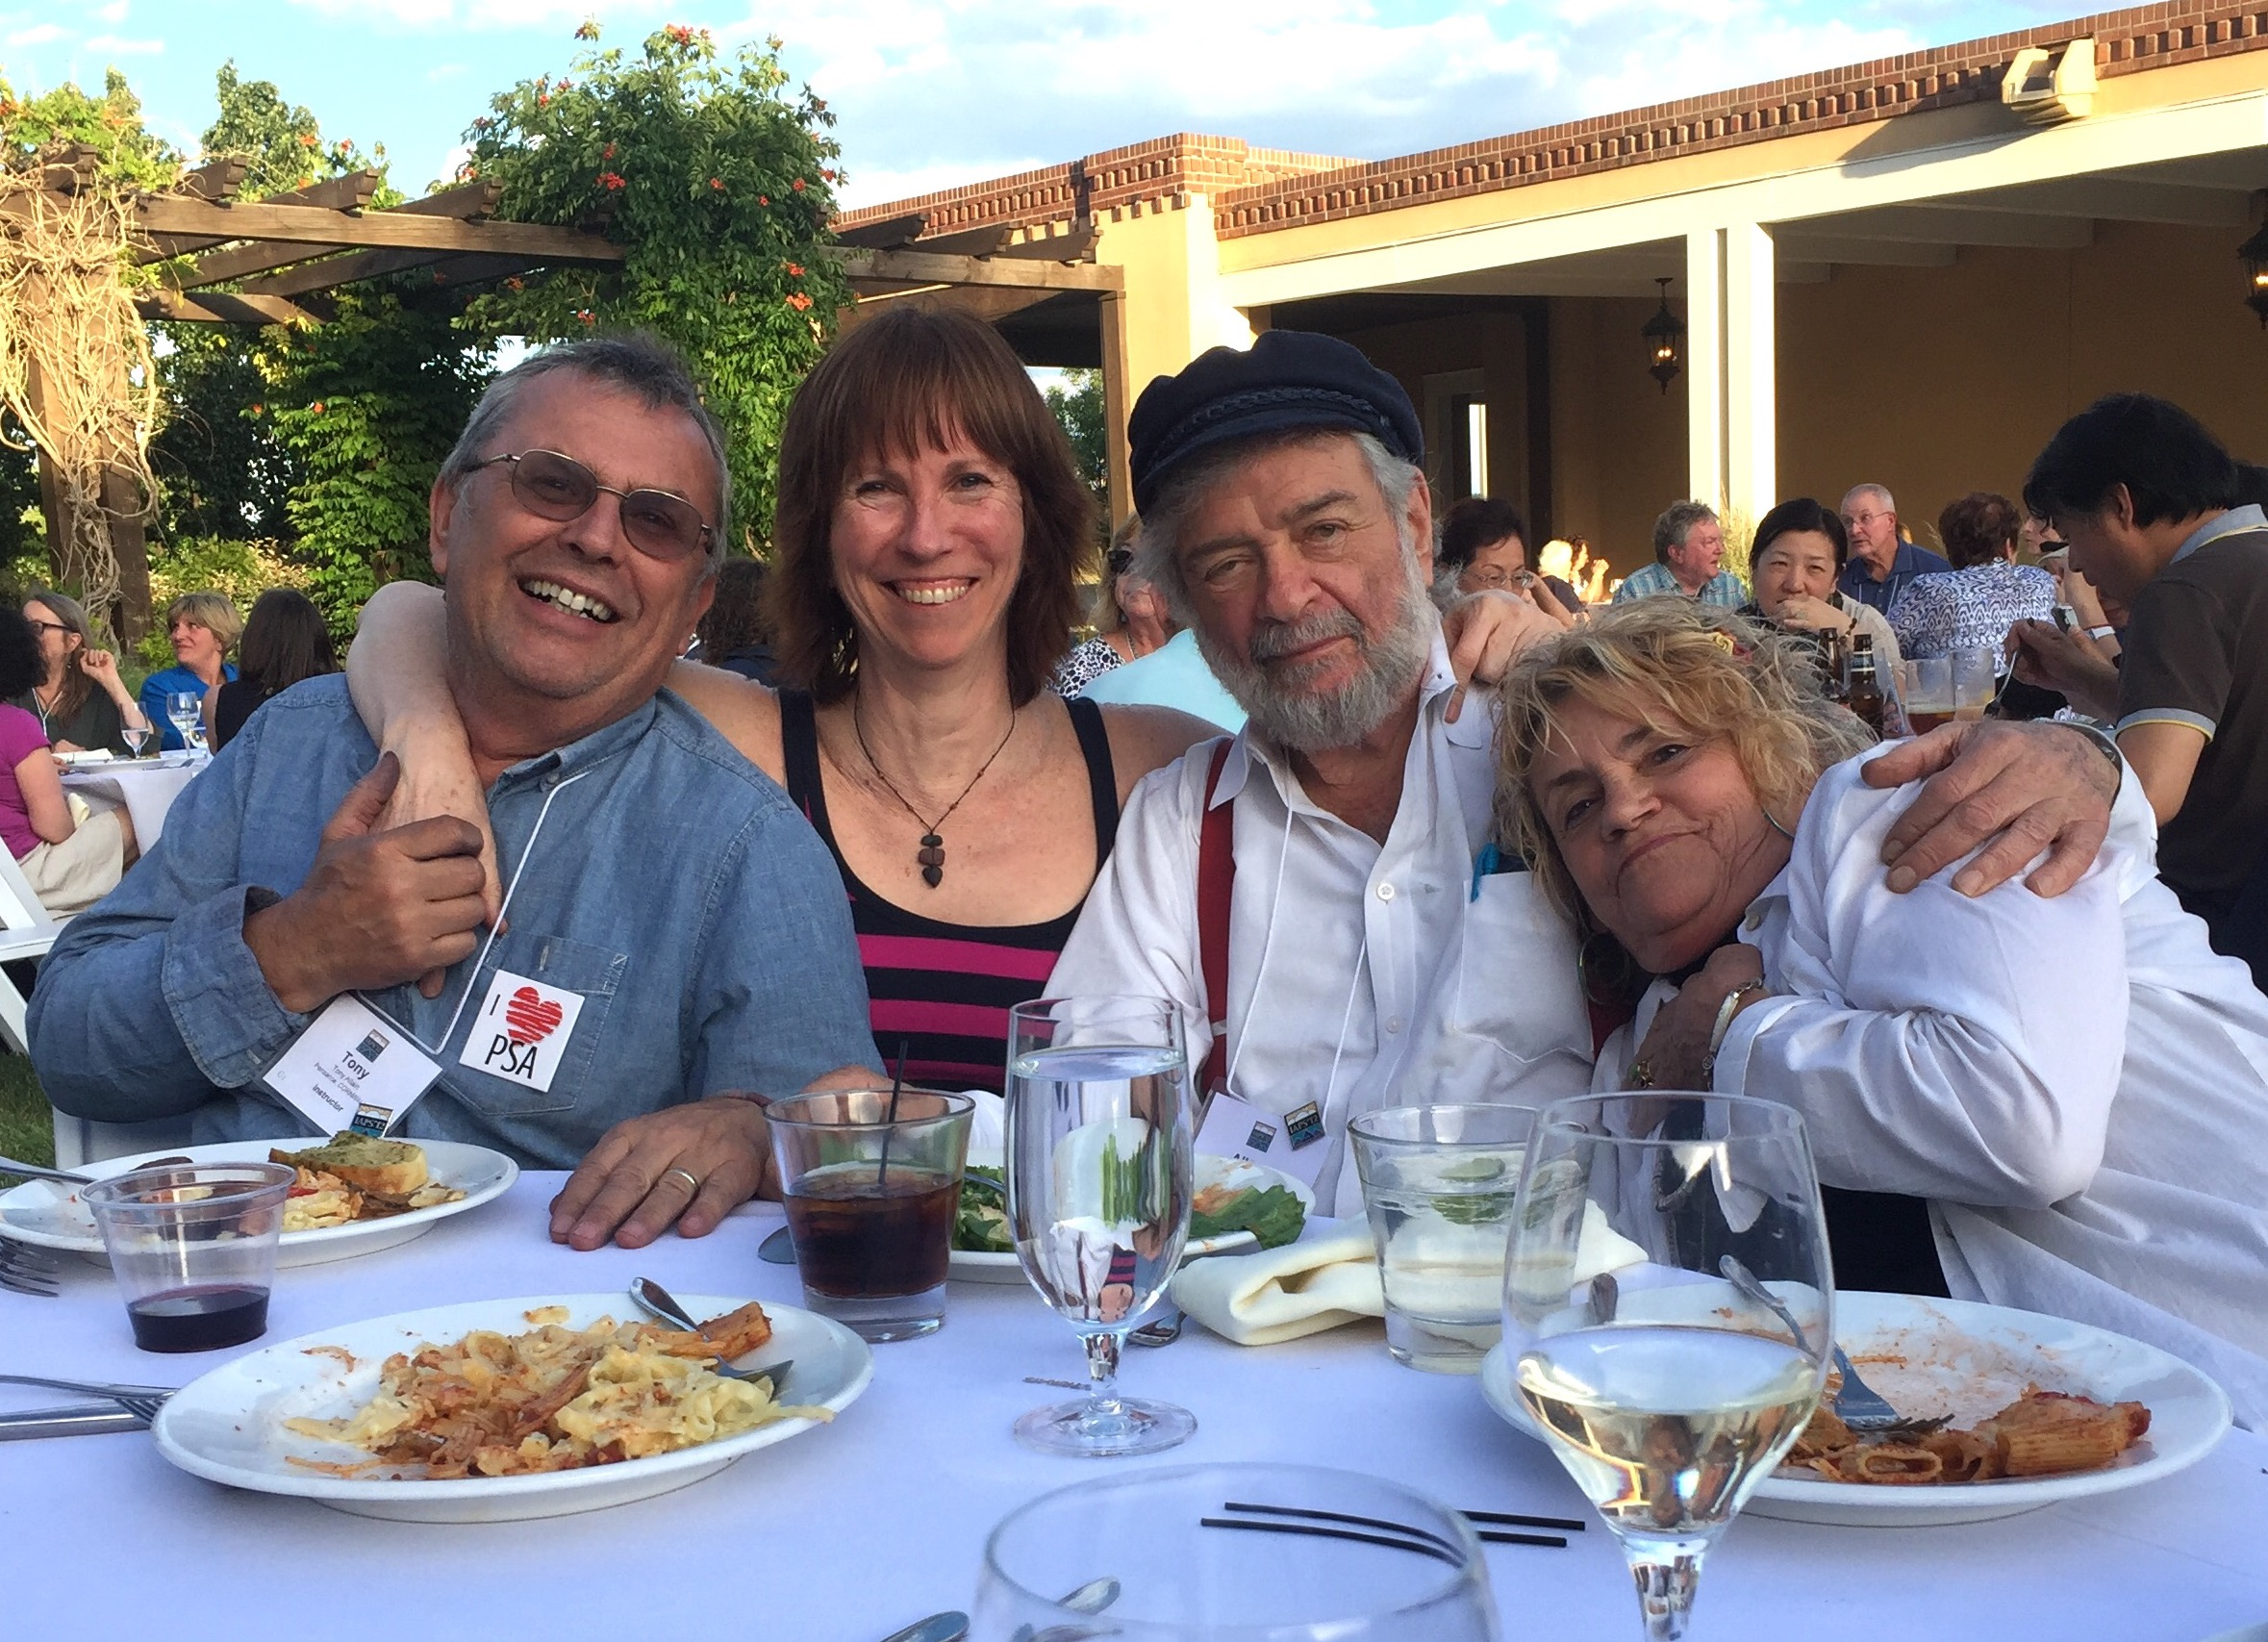 Artist Interview videos: Hanging out with Tony Allain, and Albert and Jeanine Handell who happily were at my table the first dinner!